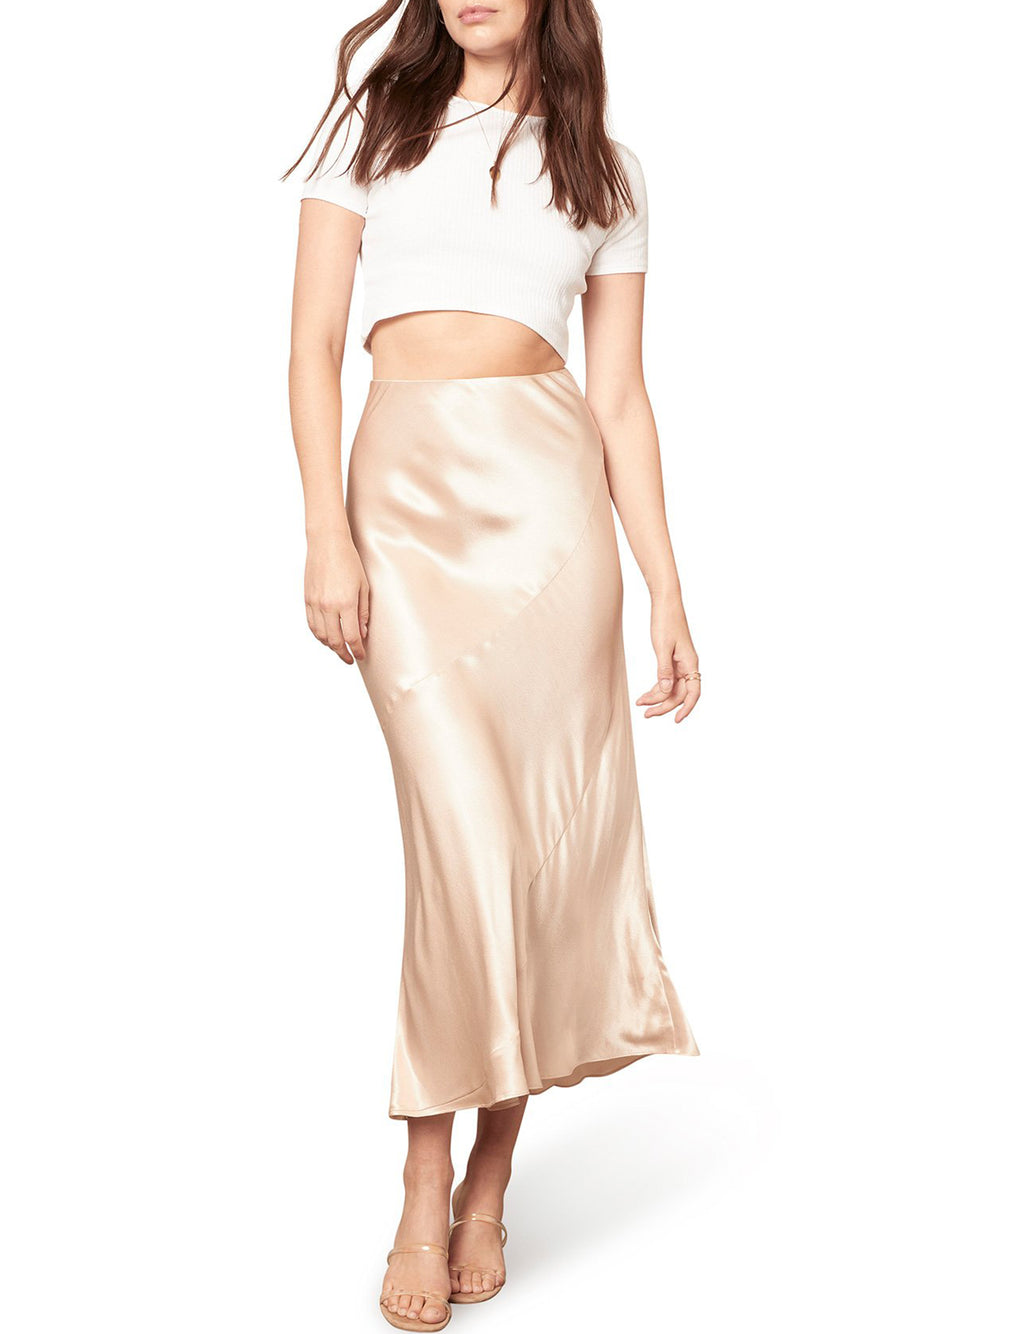 Sway of Life Skirt in Champagne